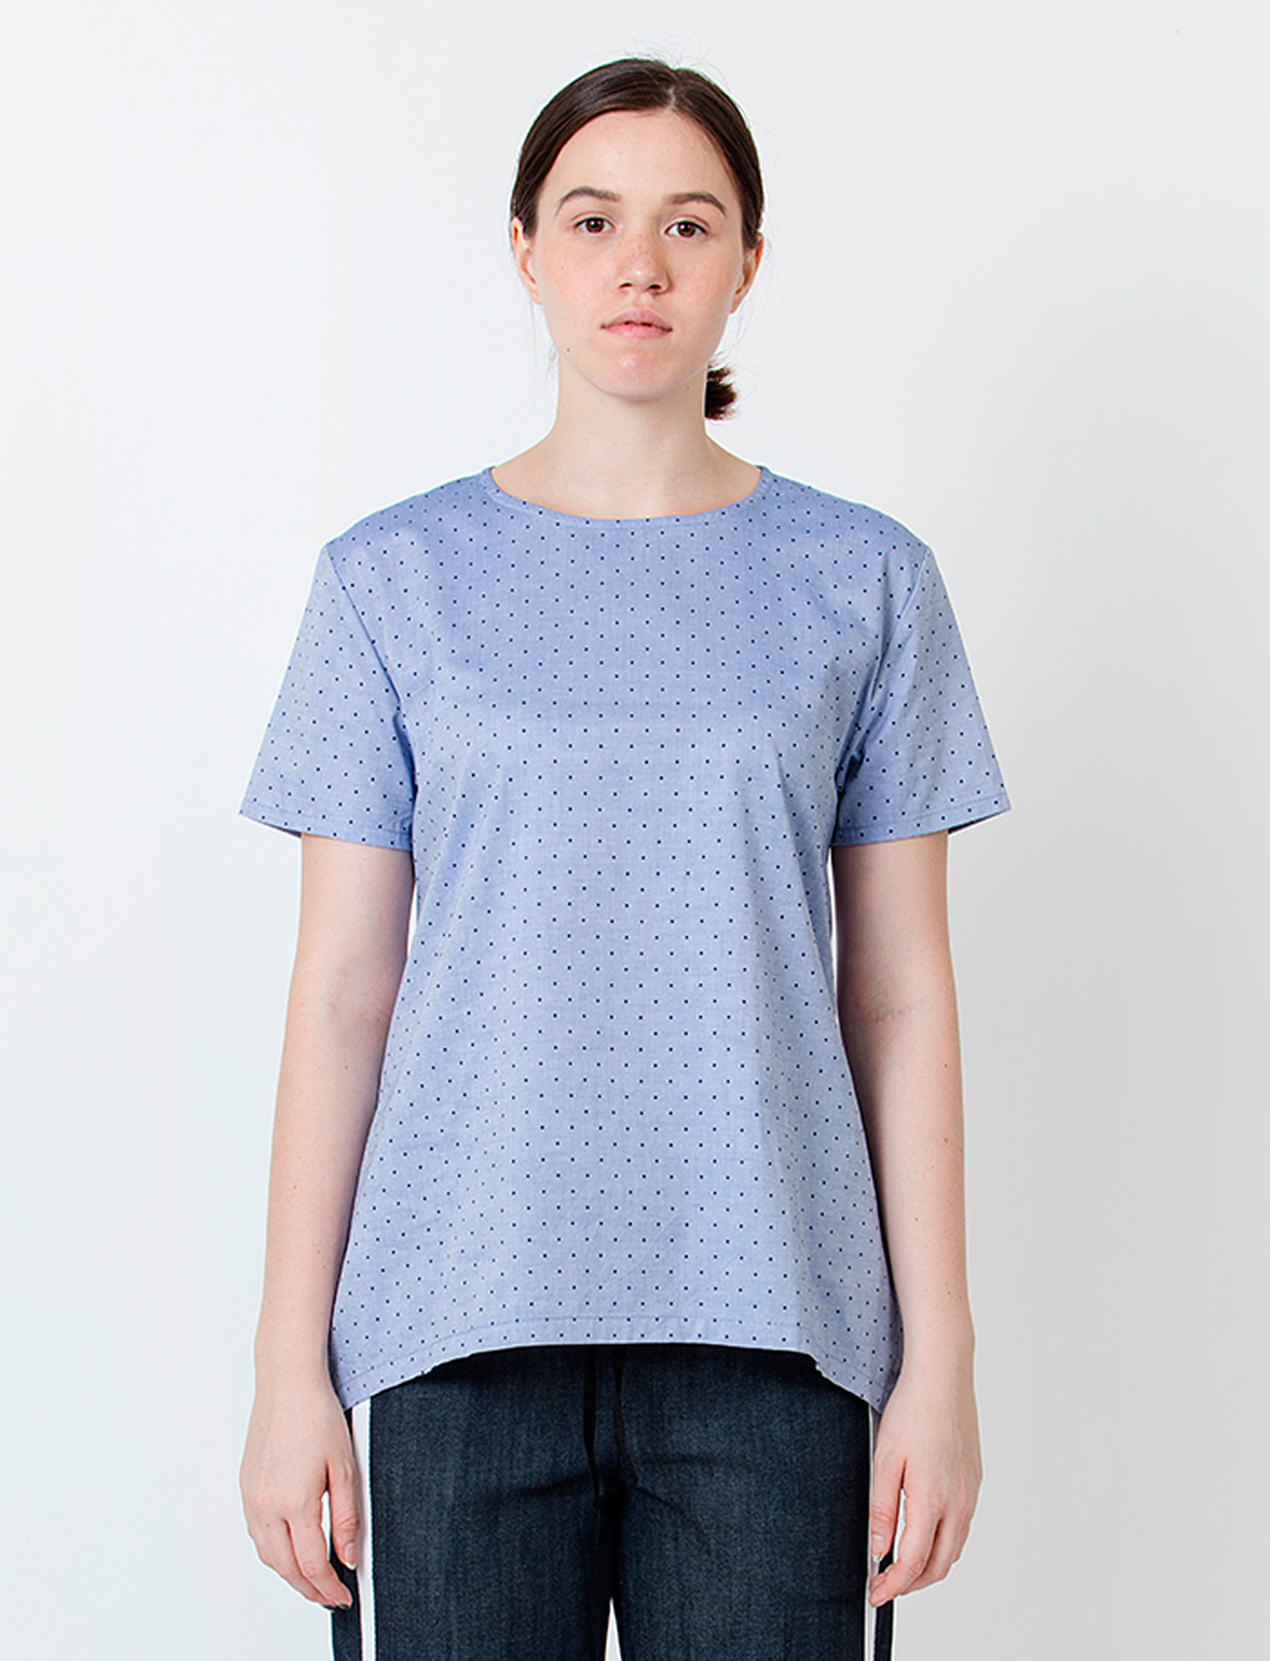 Wastu Polkadot Short Sleeve Apron Top - Blue